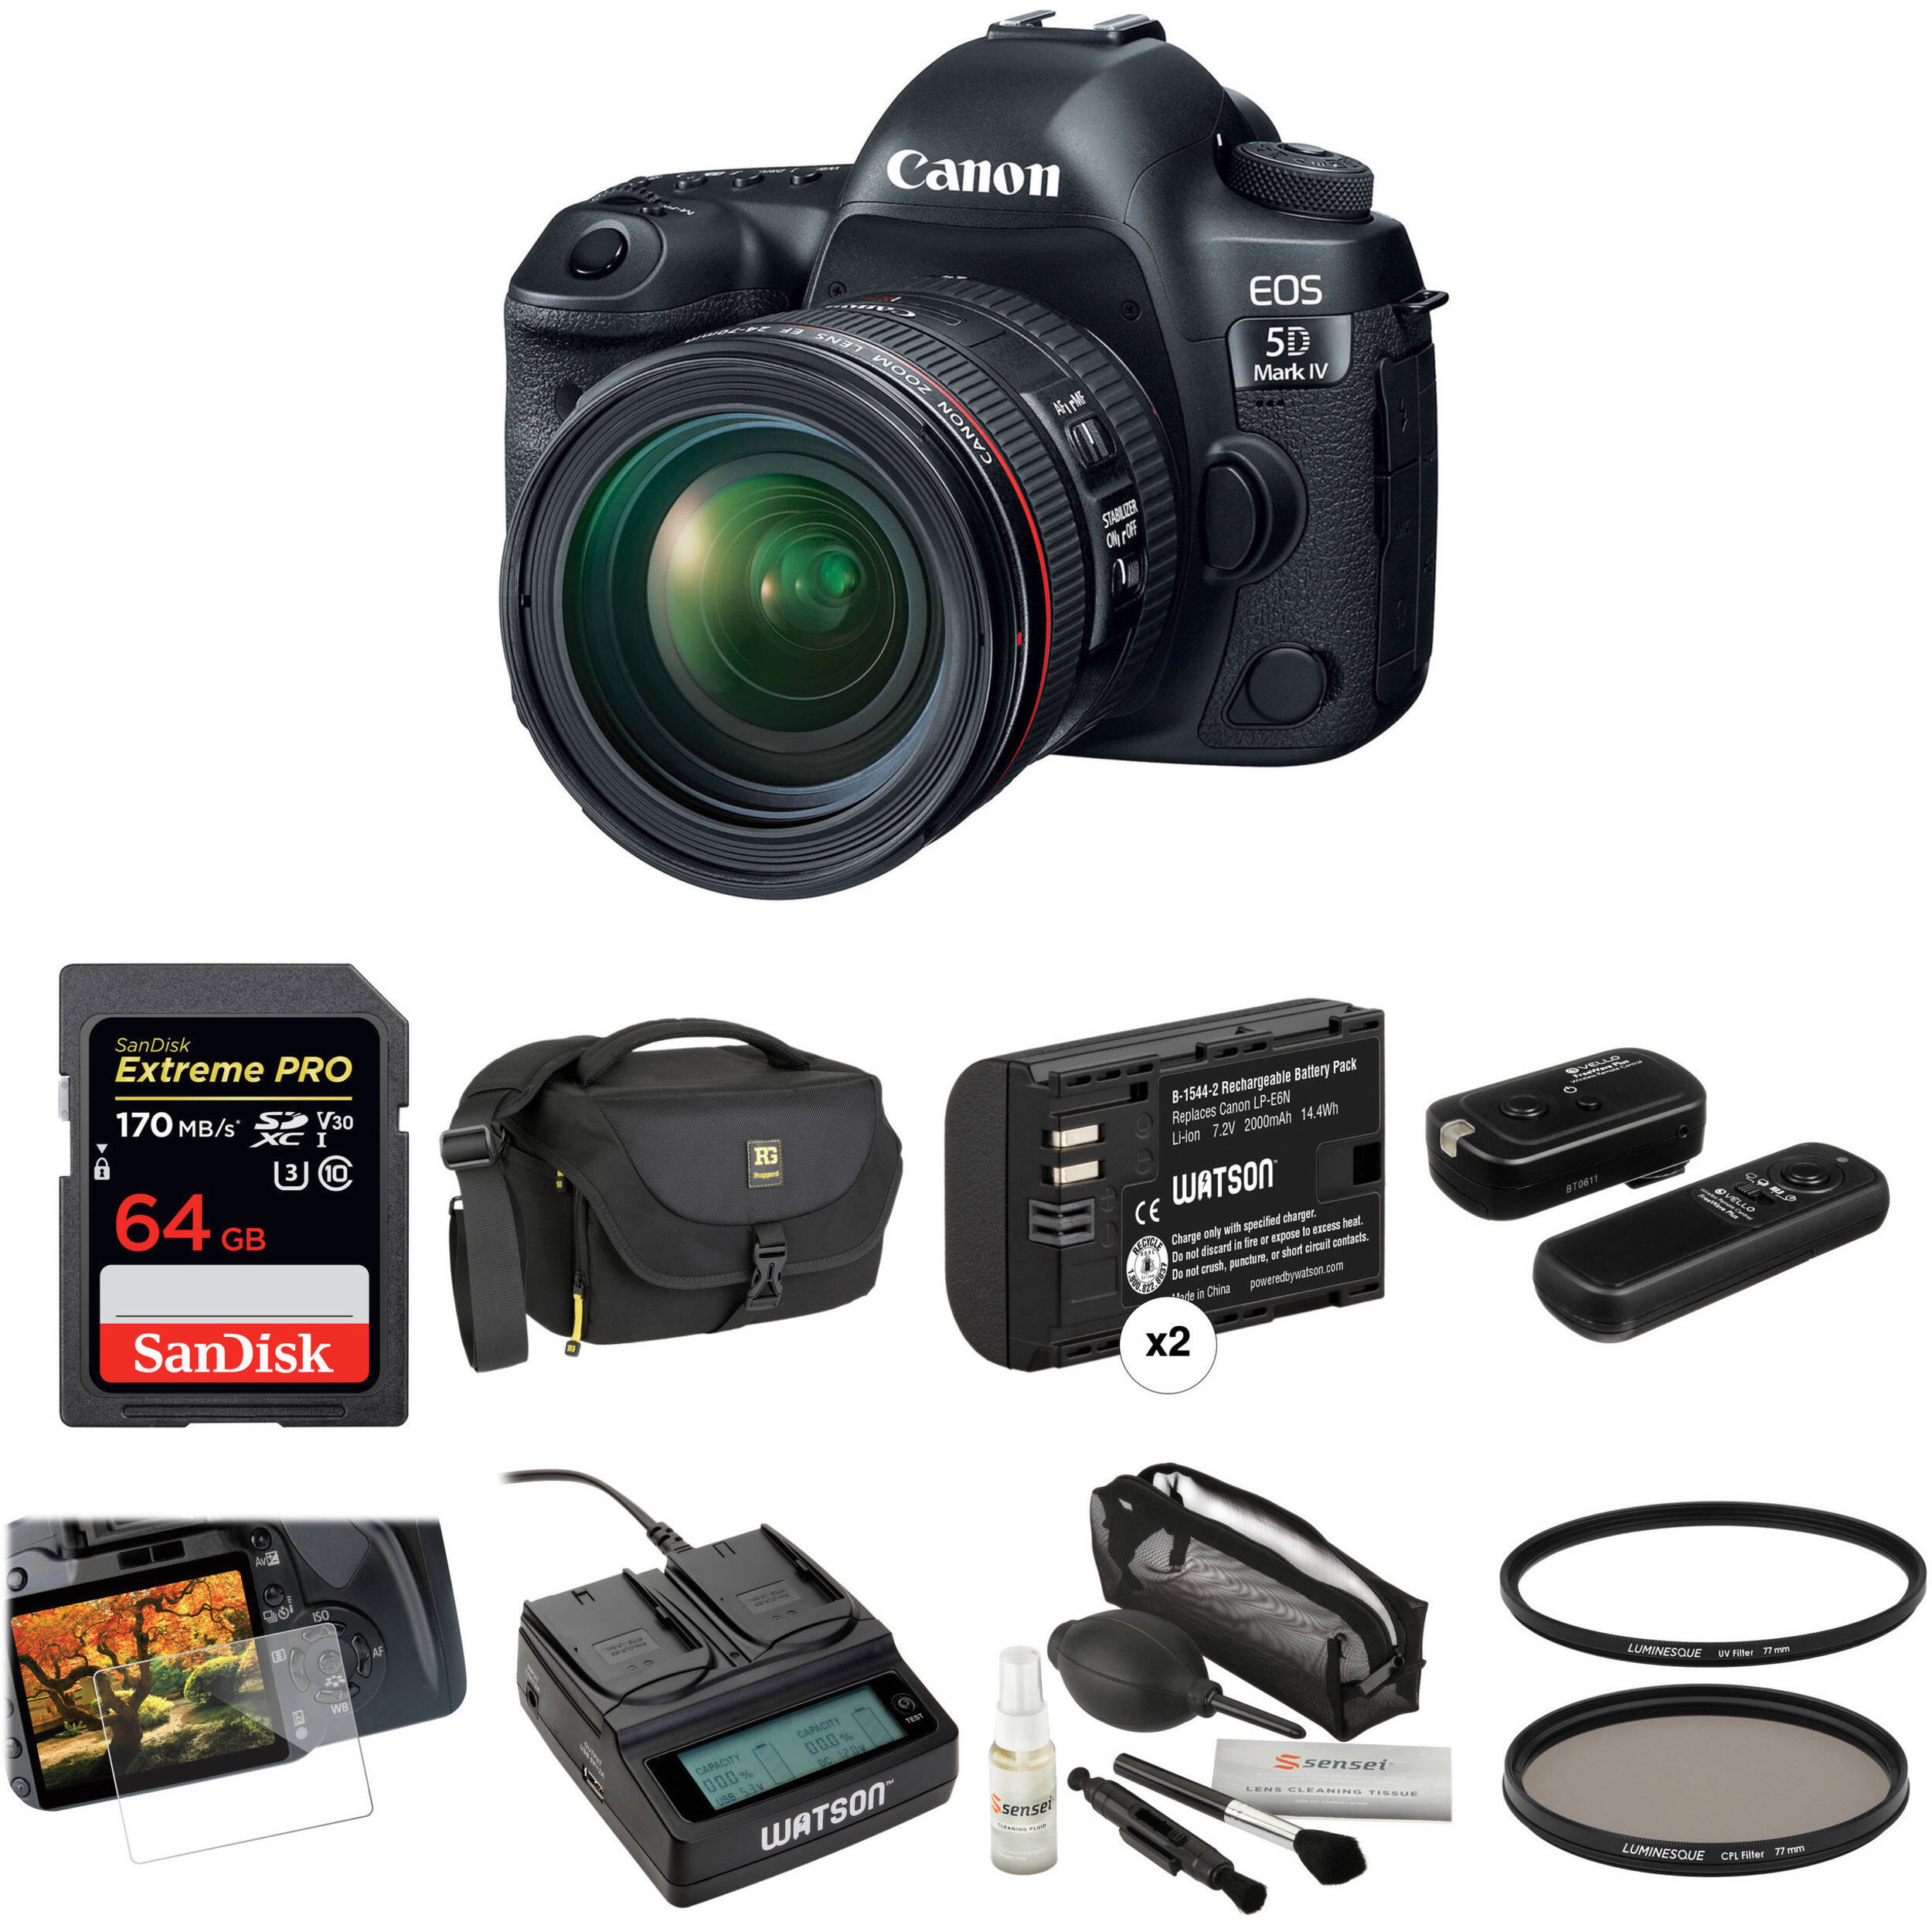 Canon Eos 5d Mark Iv Dslr Camera With 24 70mm F 4l Lens Deluxe 1200d Kit 18 55mm Iii Non Is